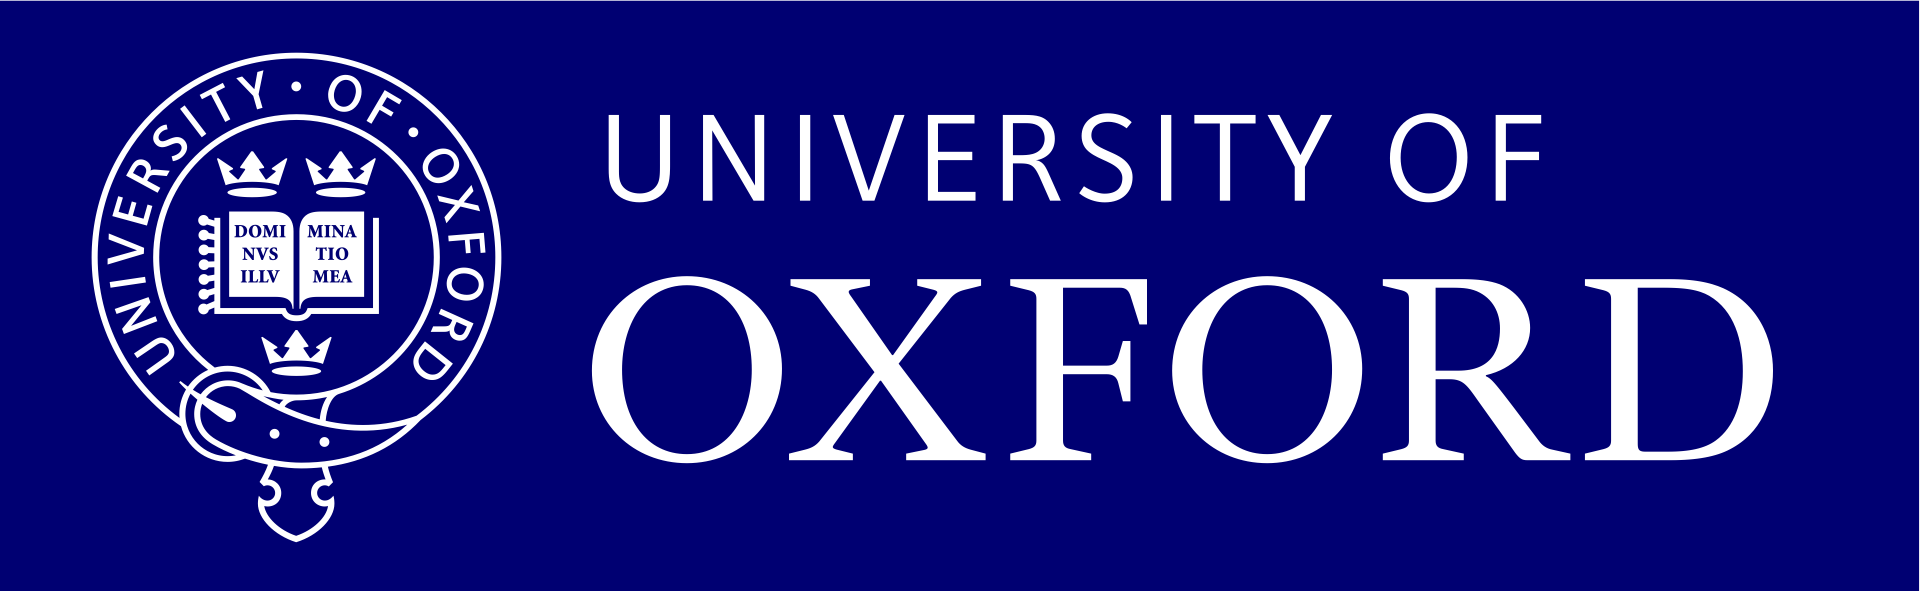 Oxford rectangle copy